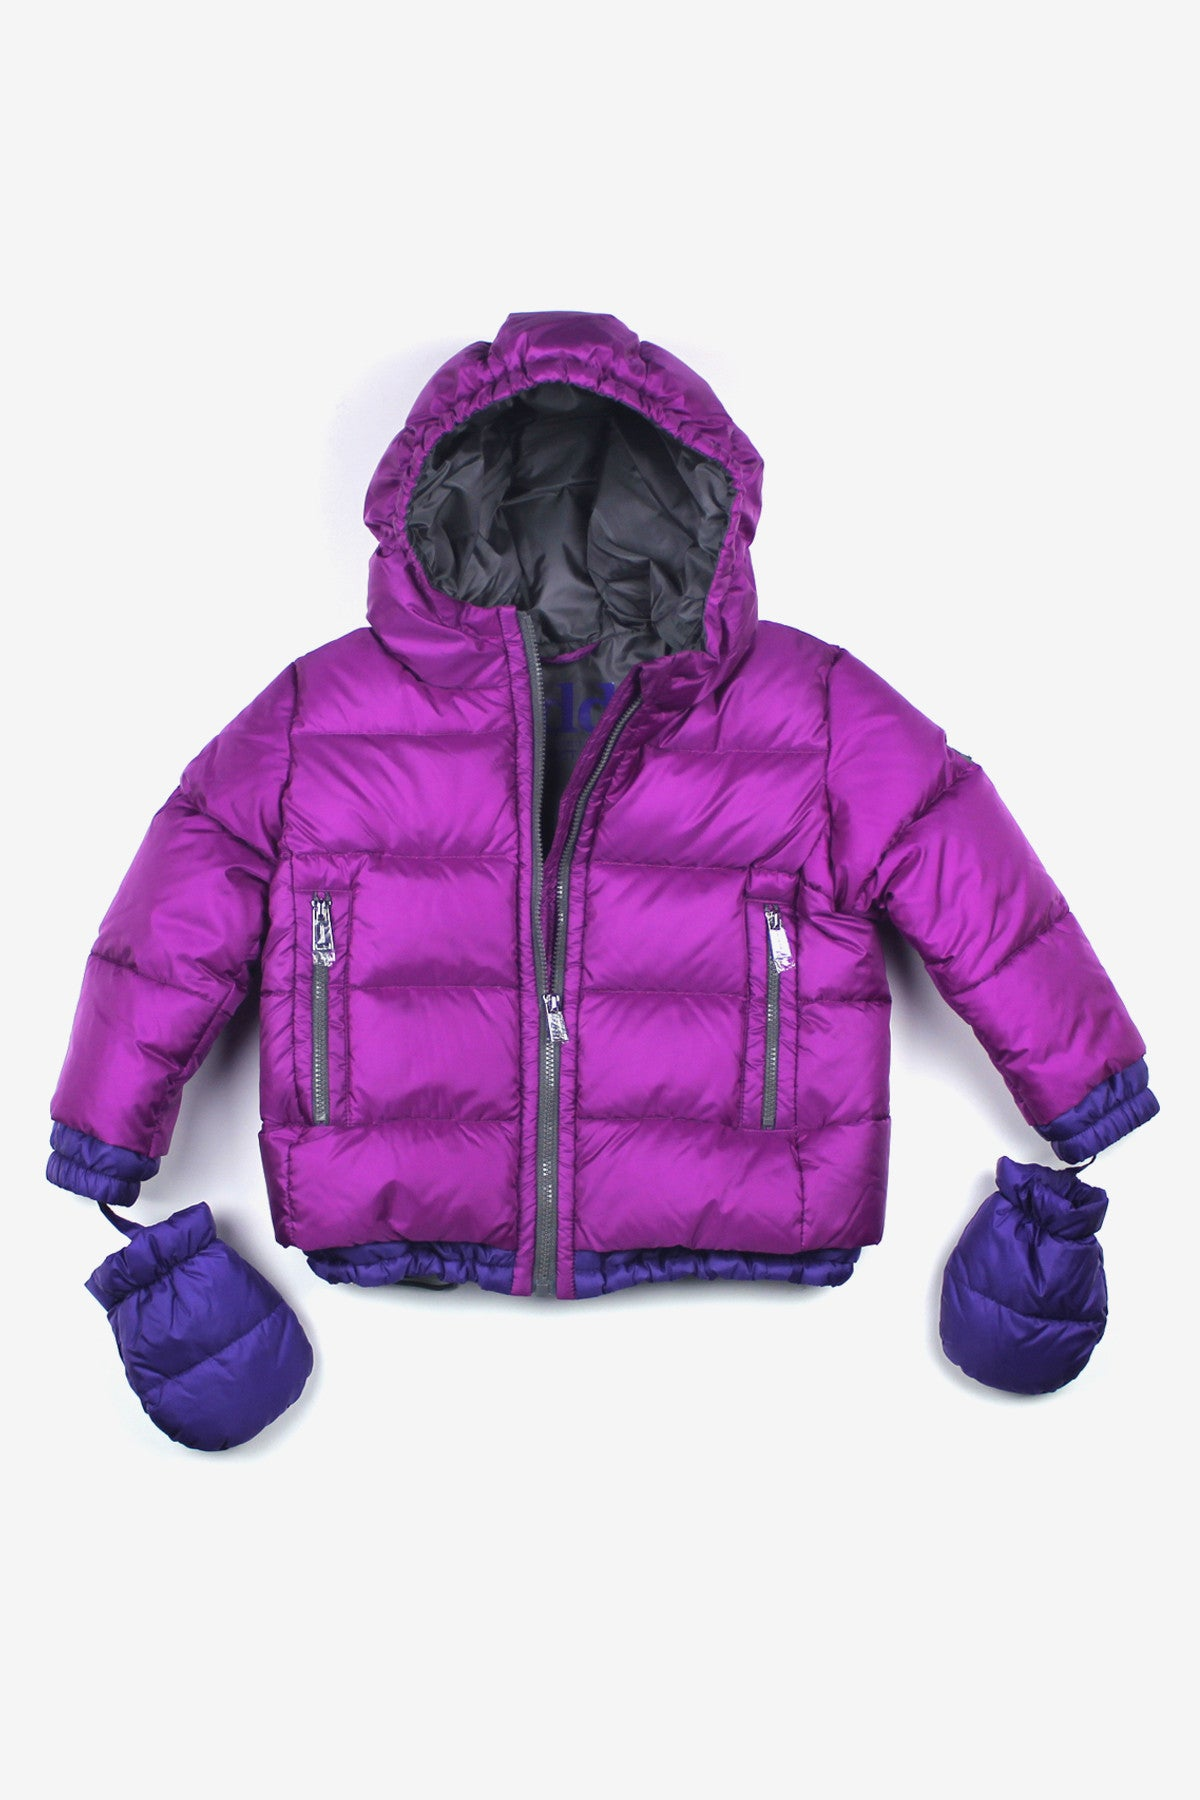 866f30d23 Baby Boys and Baby Girls Jackets